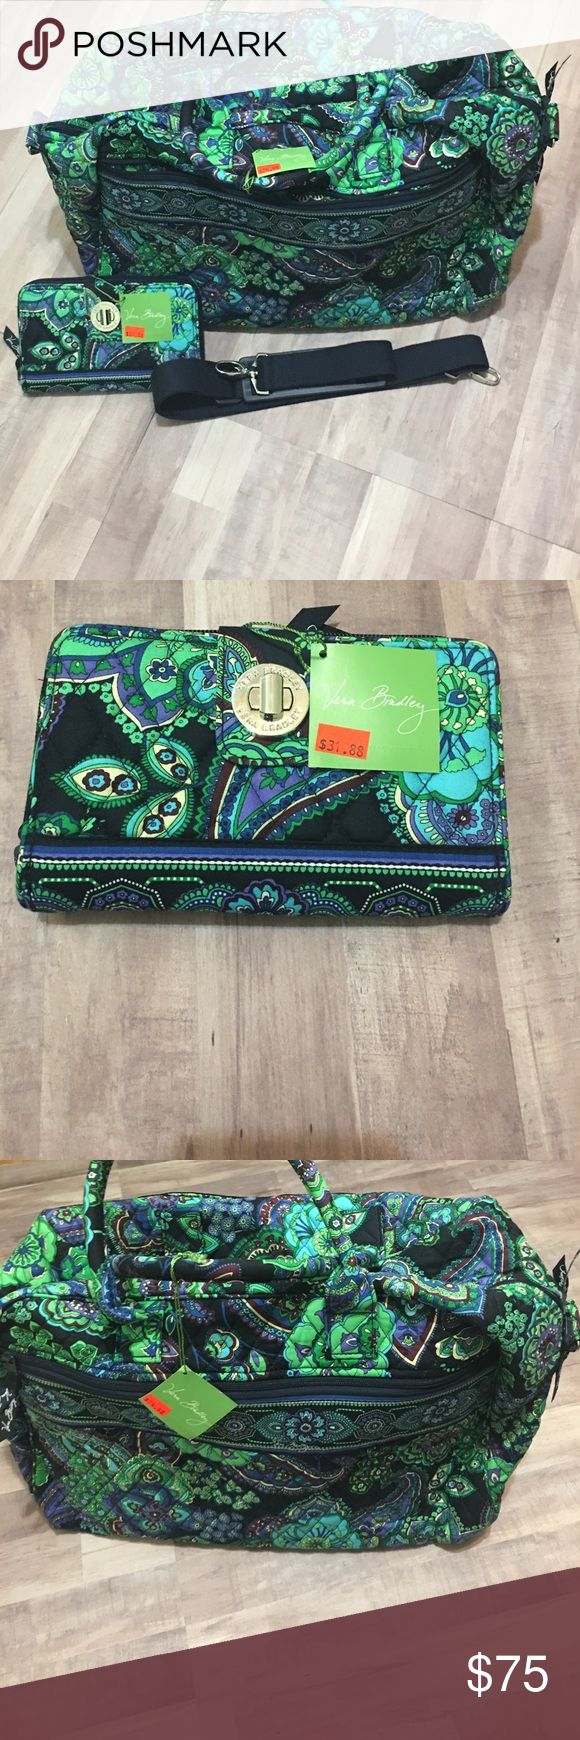 "Vera Bradley Blue Rhapsody Weekender and Wallet NWT! EARLY MOTHERS DAY SALE!!🍾🎉🍾🎉🍾                 Gorgeous Vera Bradley Blue Rhapsody Weekender & Turn Lock Wallet! Gorgeous!                                                   ***Approximate measurements 18"" w x 12"" h x 7"" d with 6"" strap drop; and 48"" removable, adjustable strap Vera Bradley Bags Travel Bags"